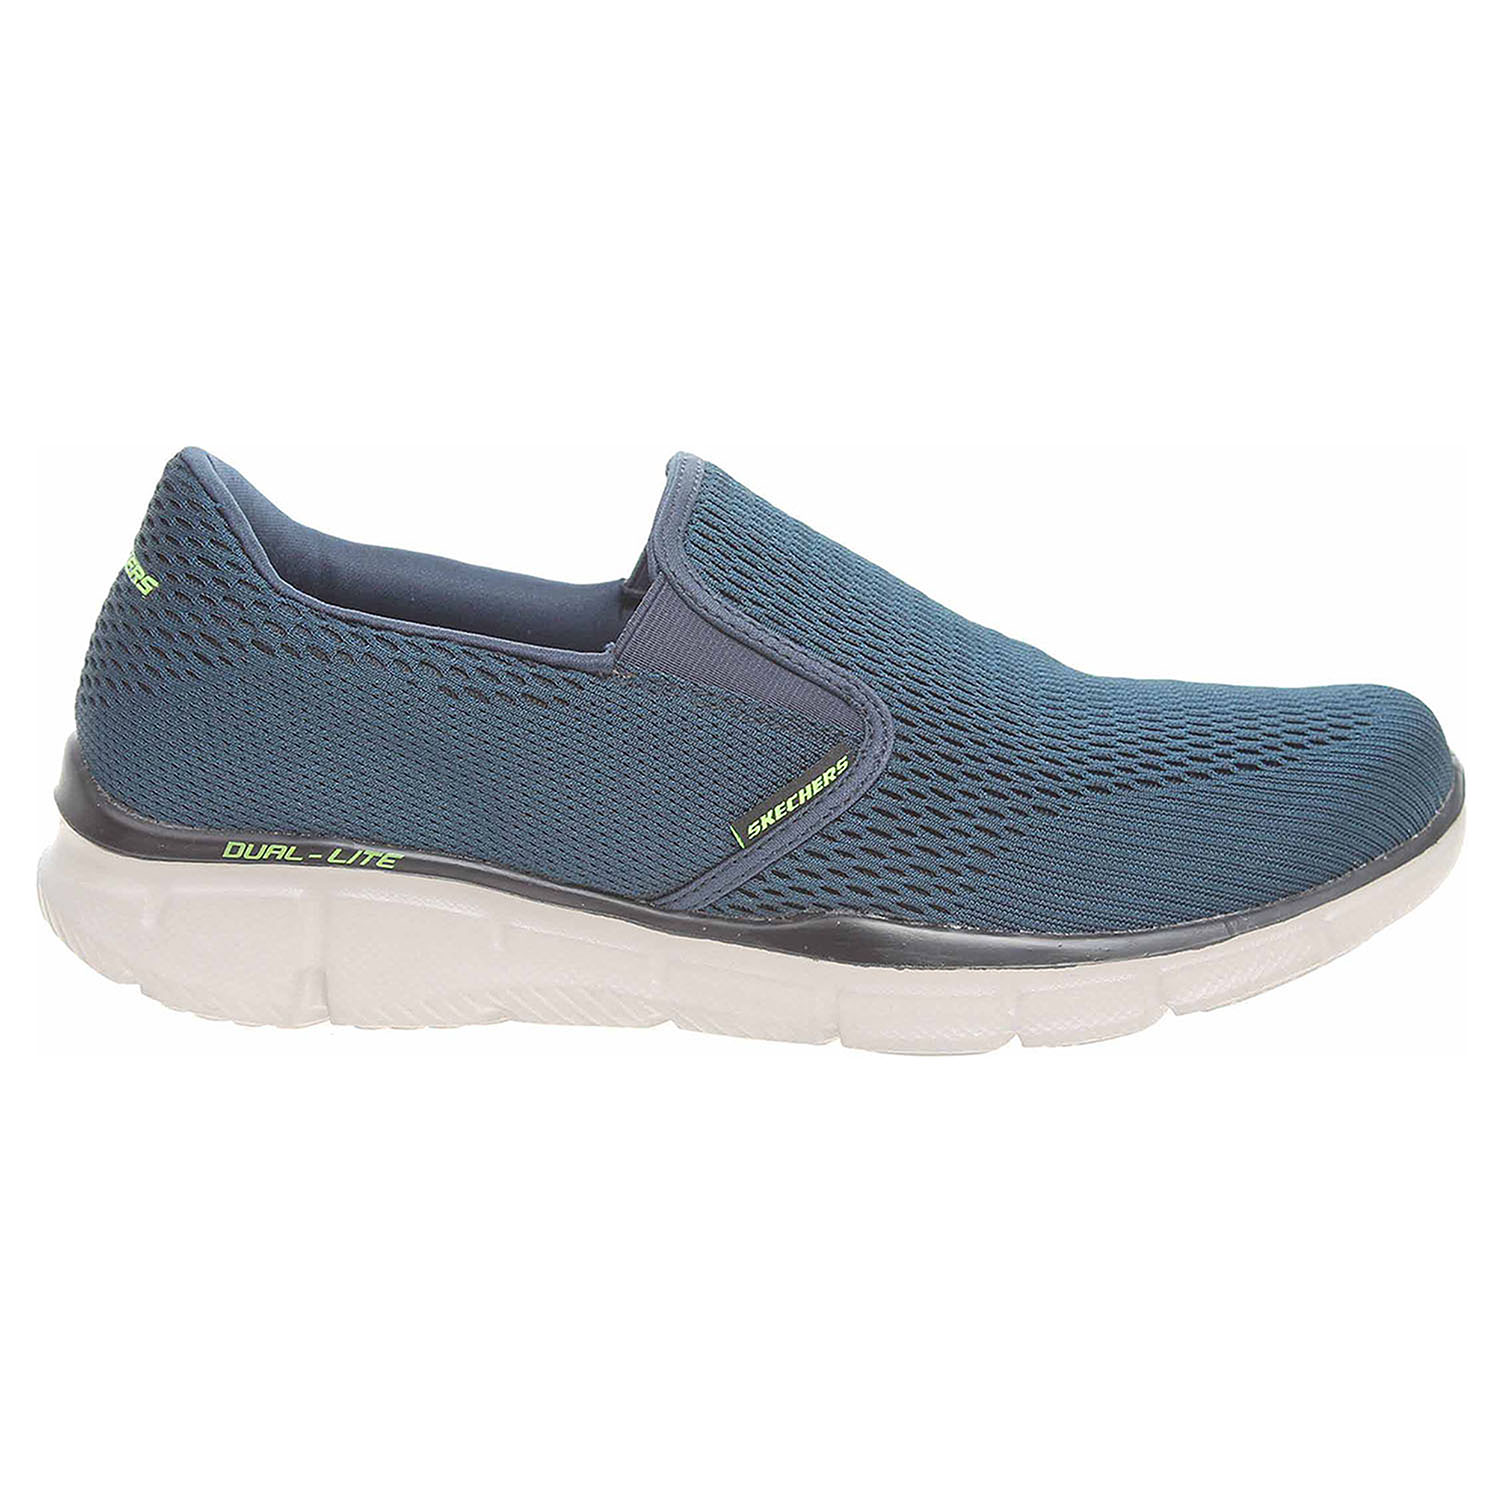 Ecco Skechers Equalizer - Double Play navy 24000463